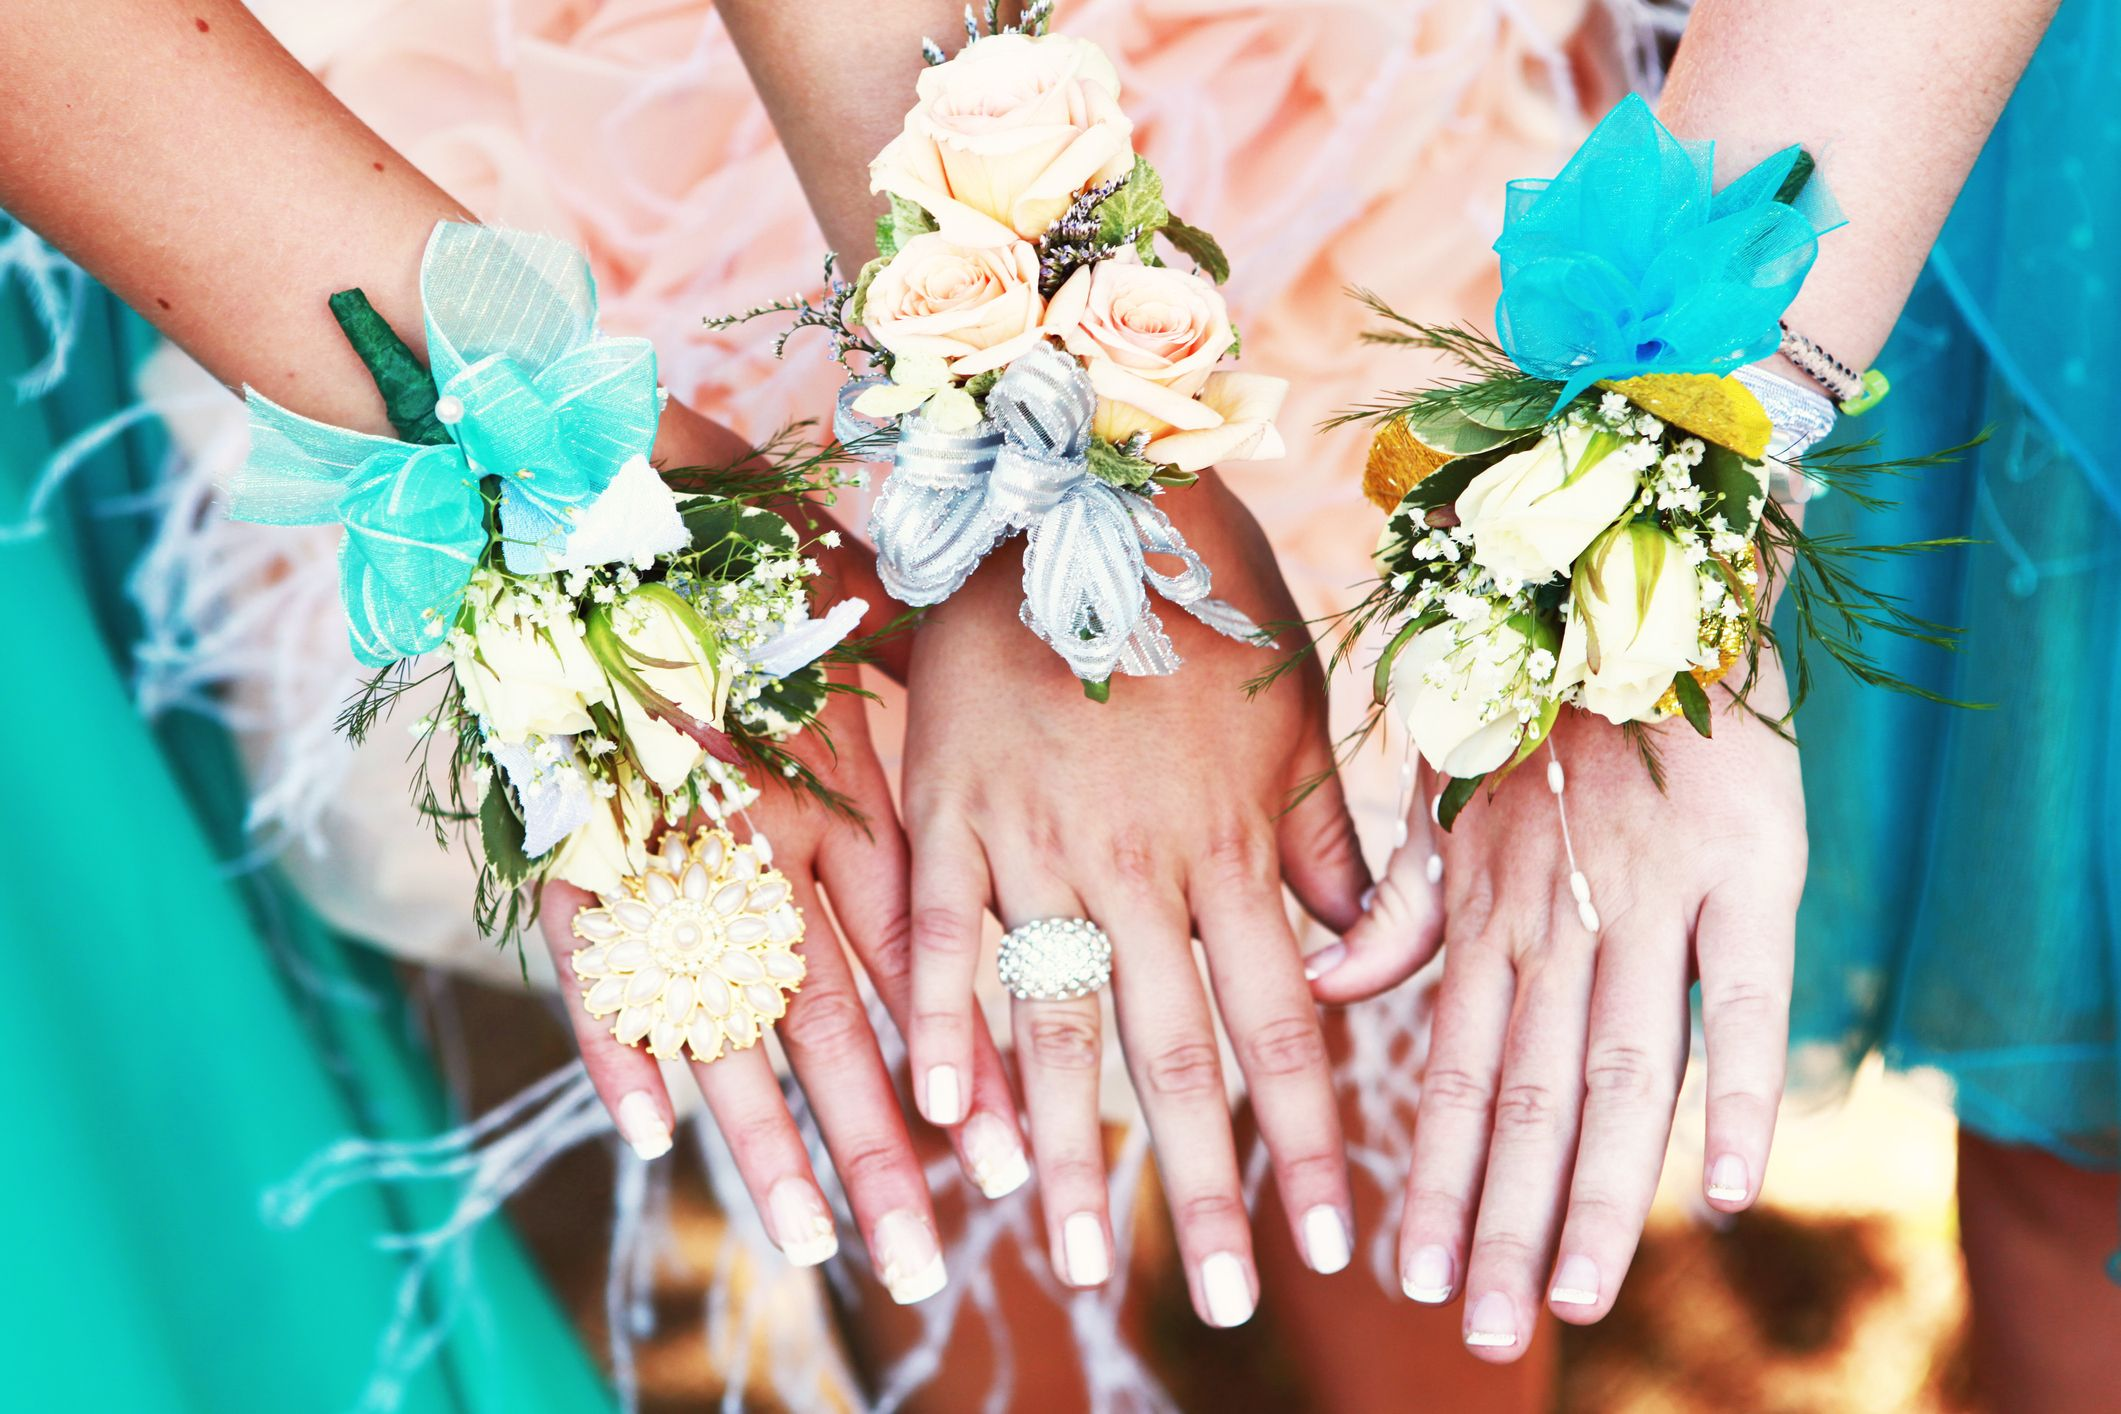 Where To Buy A Corsage 7 Places To Buy Cheap And Pretty Prom Flowers